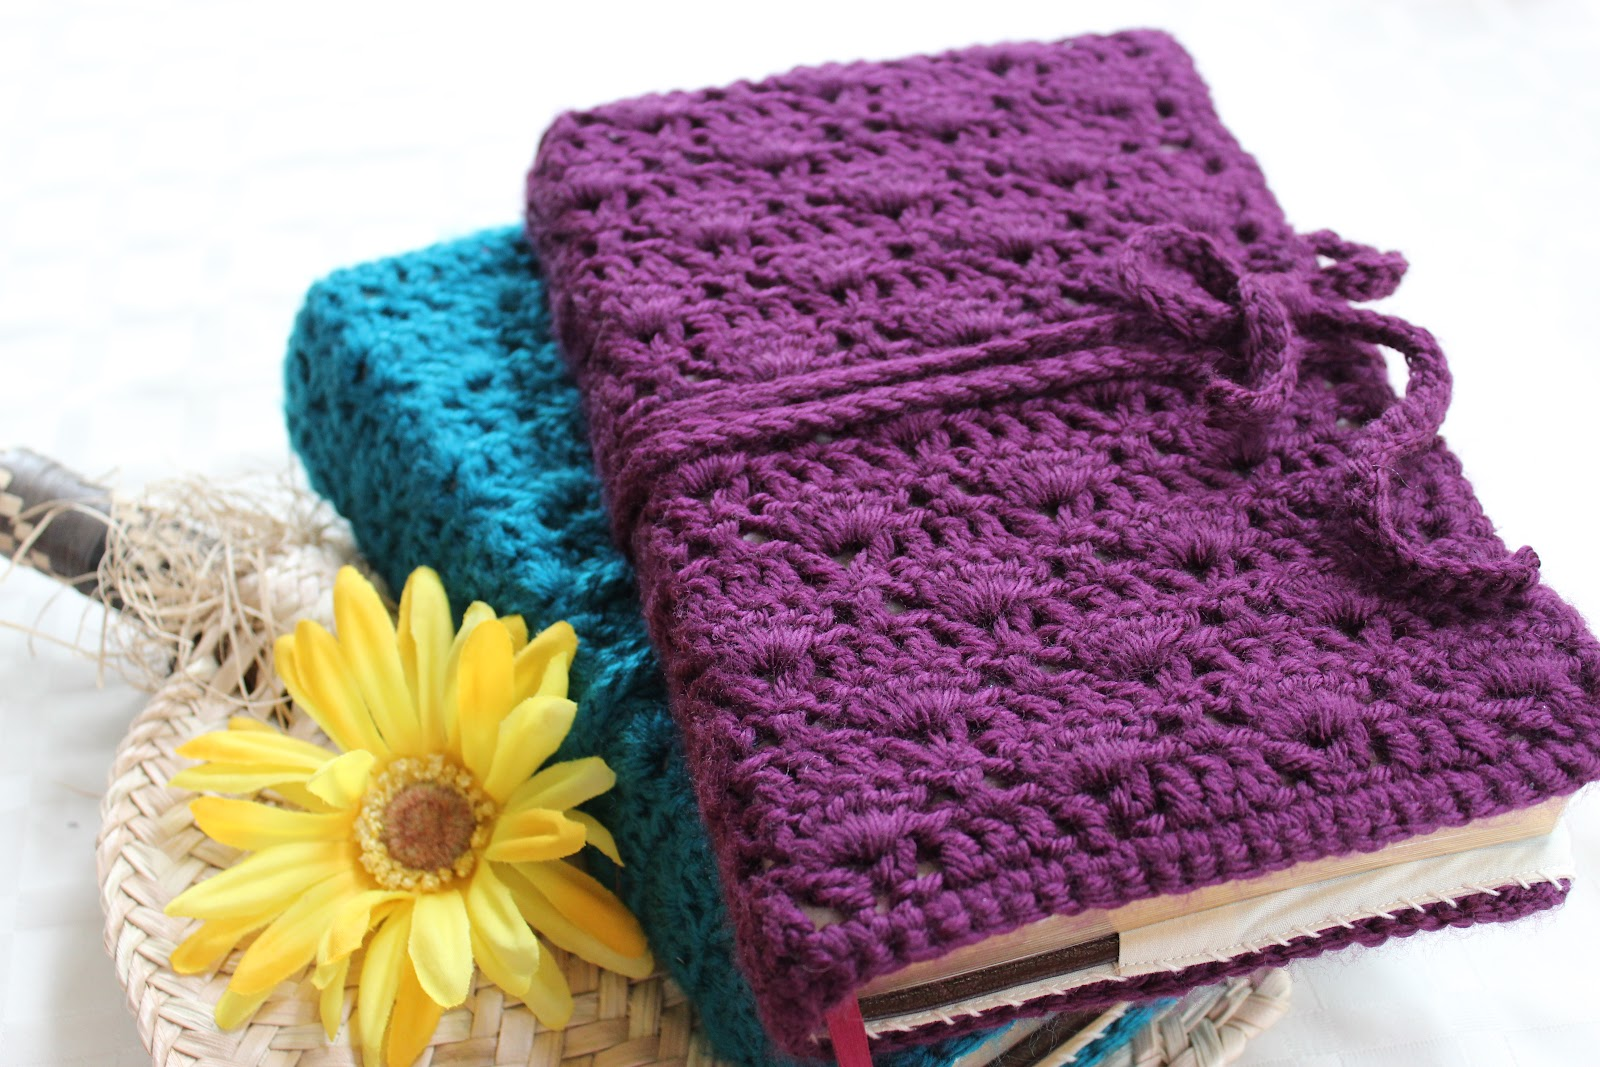 Book Cover Crochet : Mom all day hook nite book cover